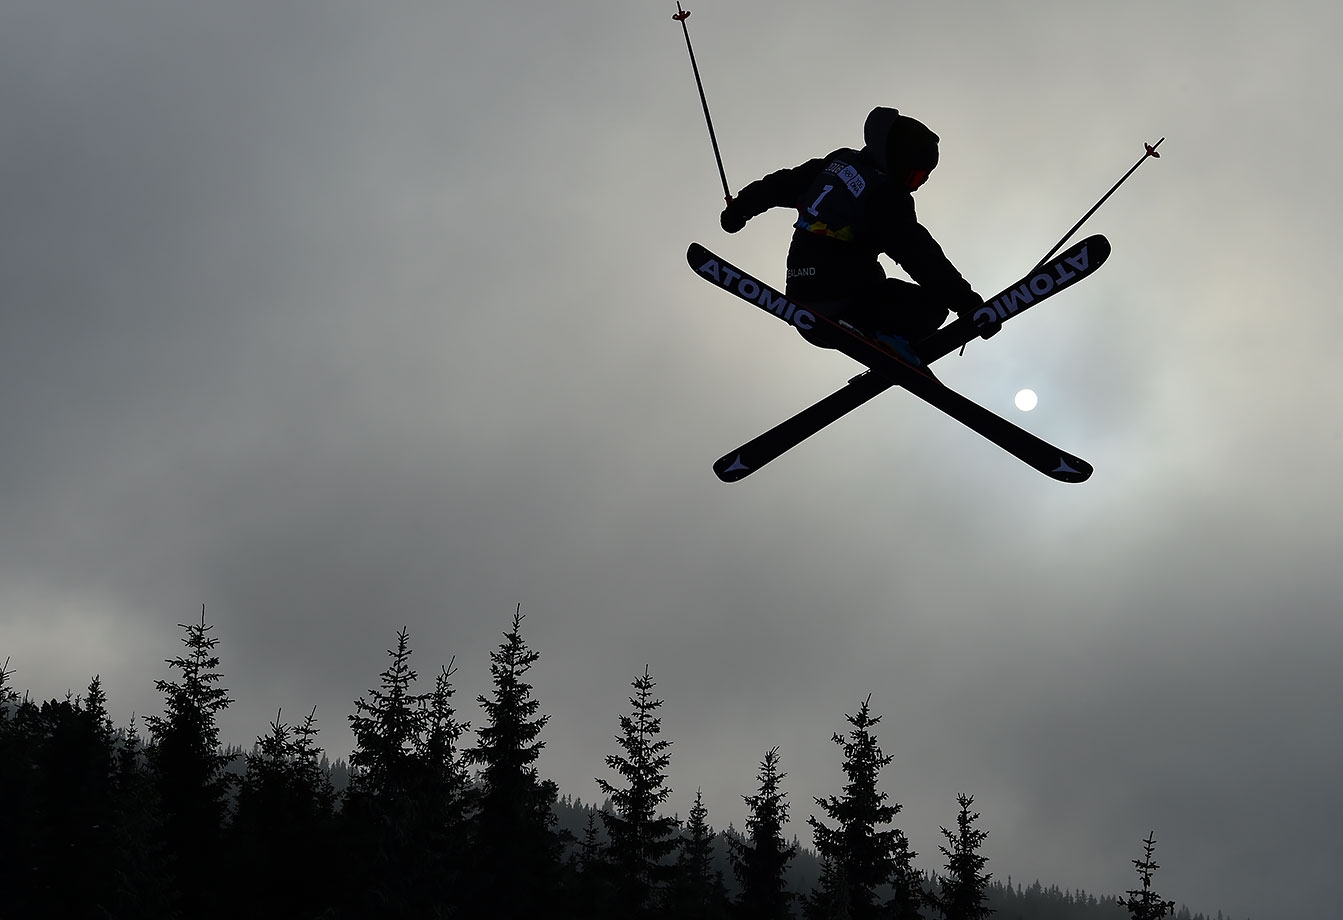 Jackson Wells (NZL) soars during the training run of the Freestyle Skiing Ski Slopestyle Finals at Hafjell Freepark on Feb. 19, 2016 during the Winter Youth Olympic Games in Lillehammer, Norway.